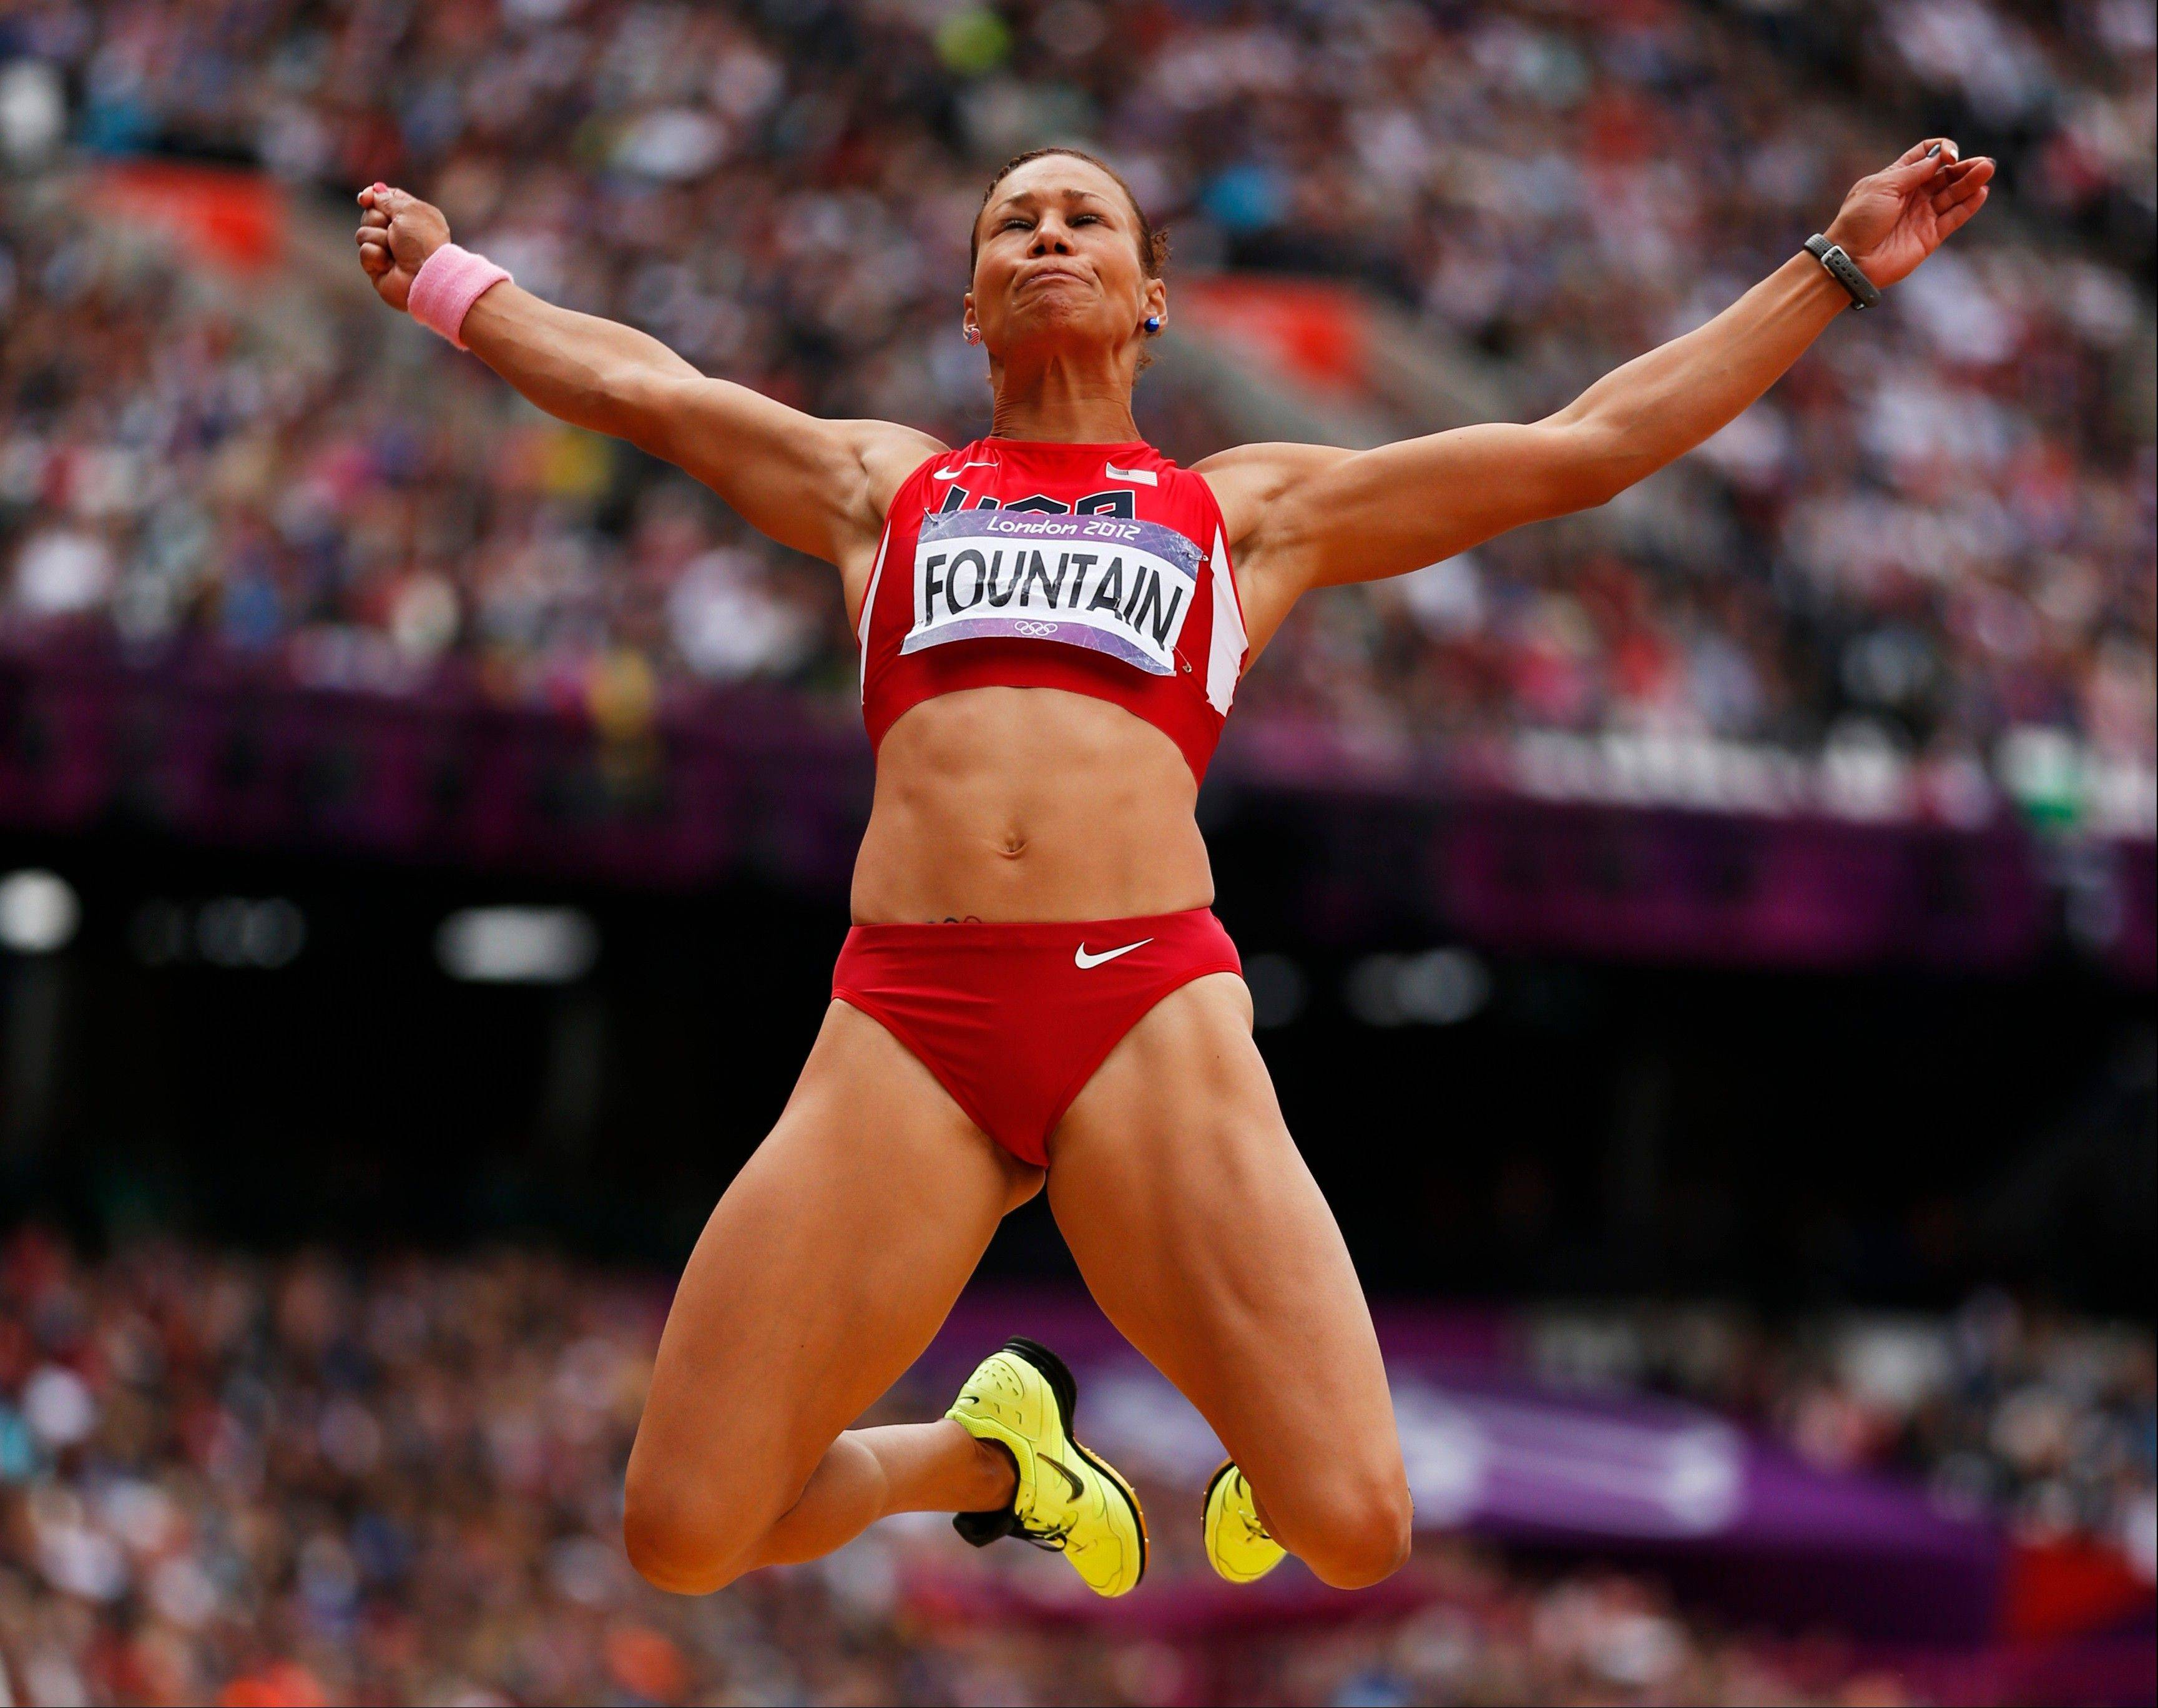 United States' Hyleas Fountain competes in the long jump heptathlon during the athletics in the Olympic Stadium at the 2012 Summer Olympics, London, Saturday, Aug. 4, 2012.